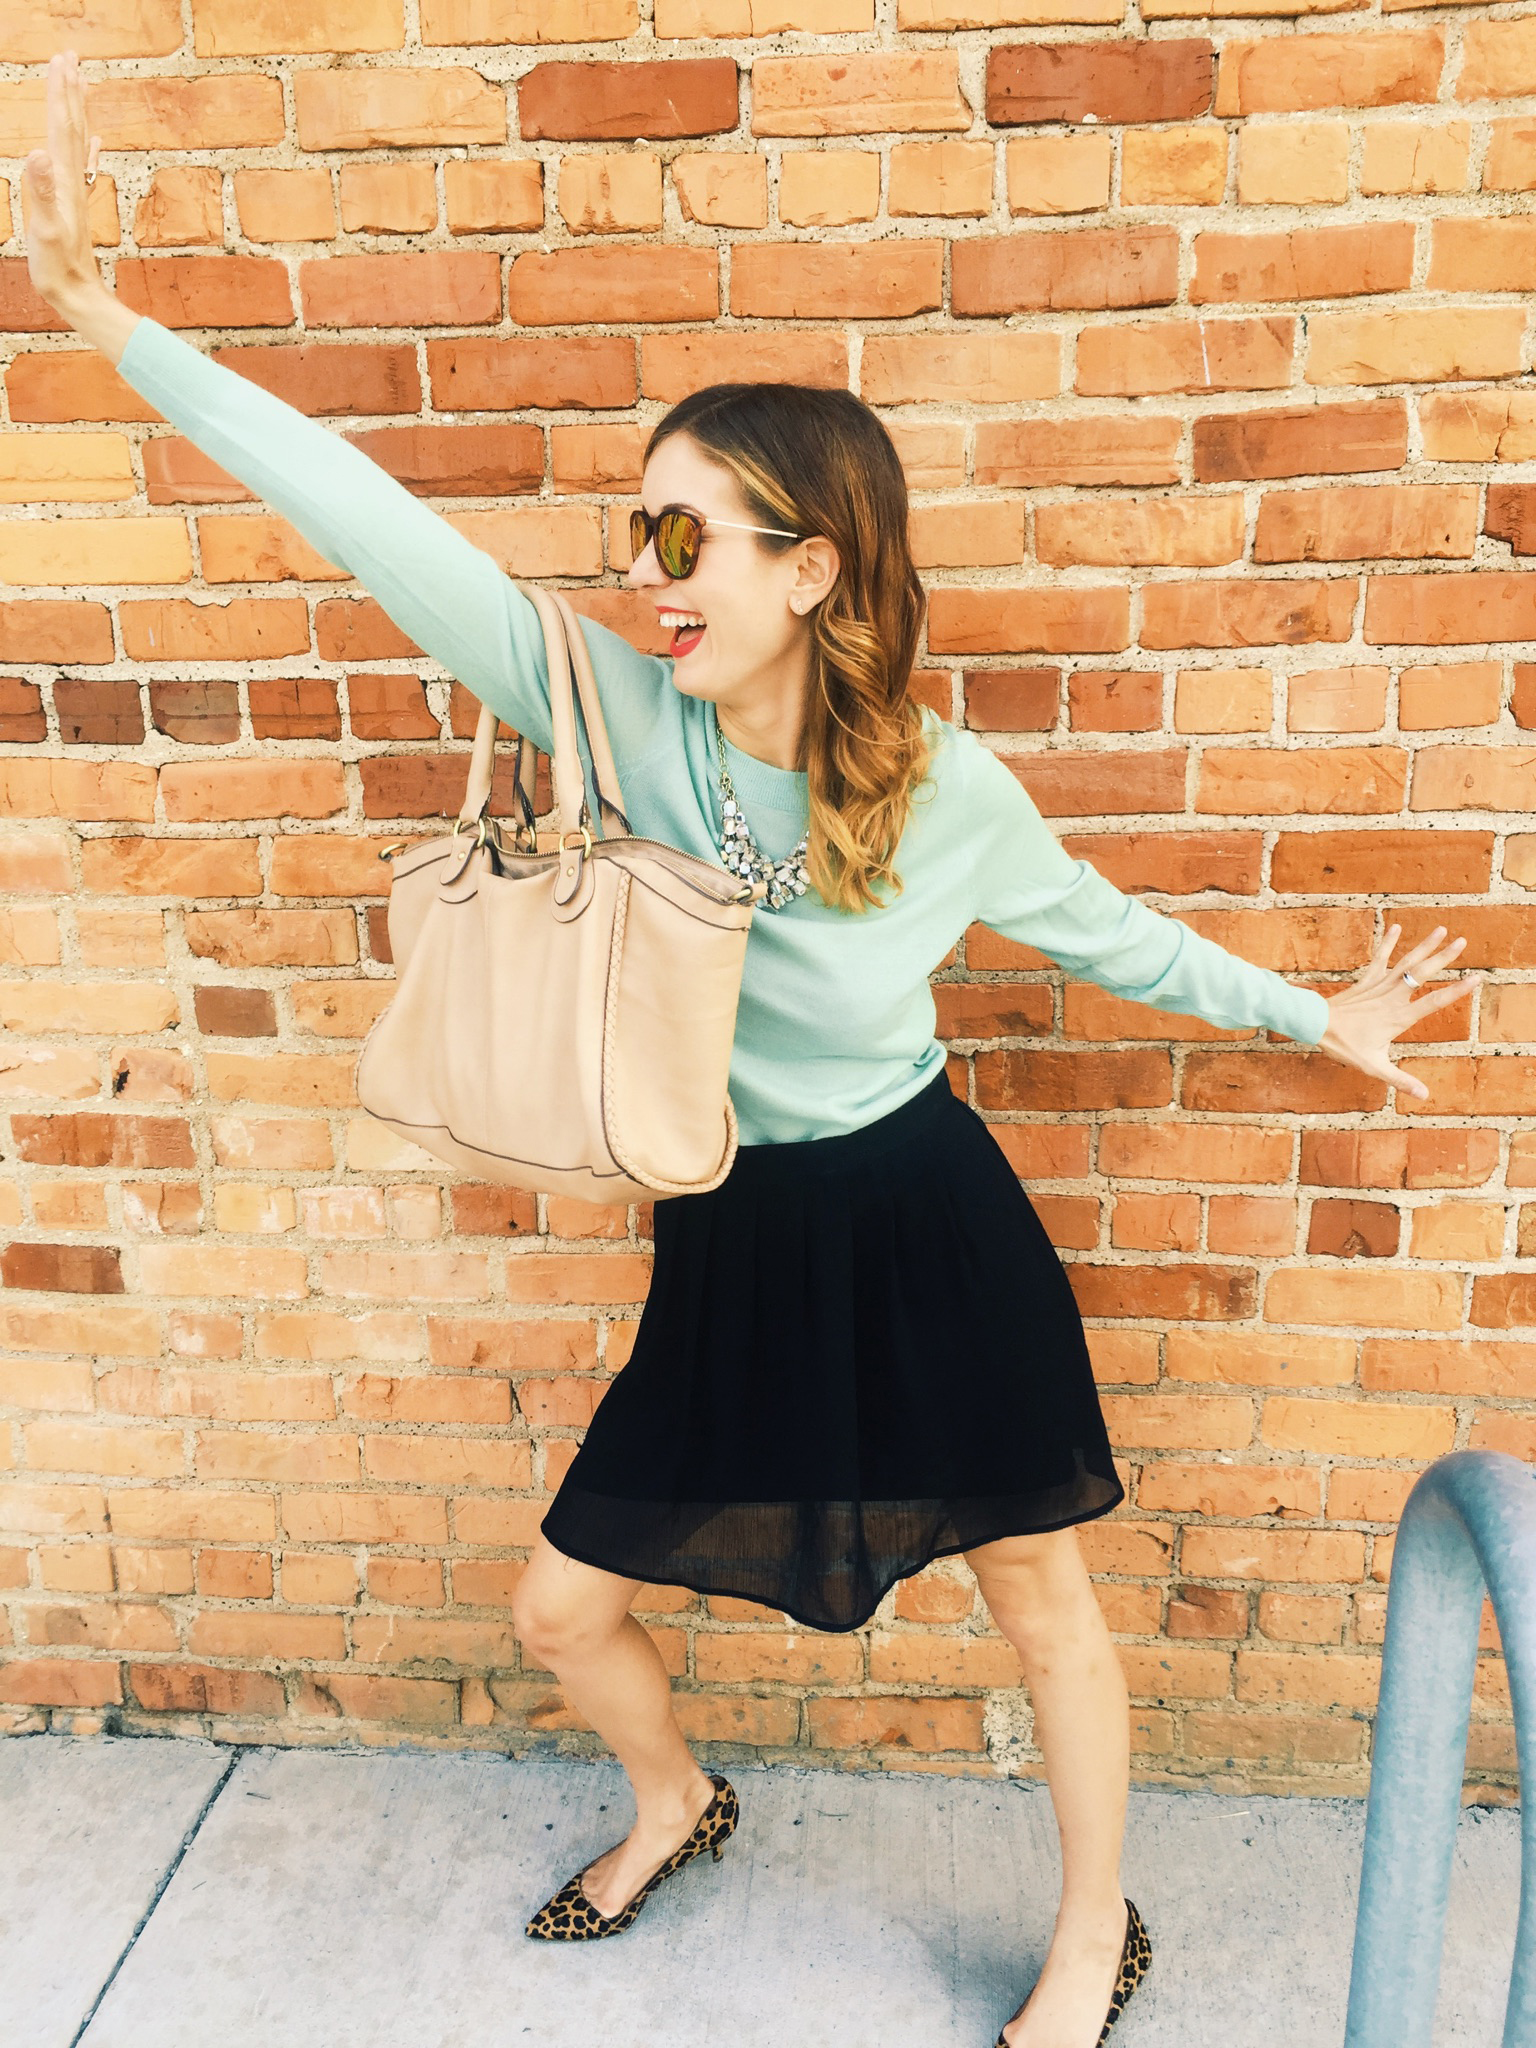 { Because a photoshoot calls for some 'killer' dance moves. Cue: laughter // Outfit  here  }